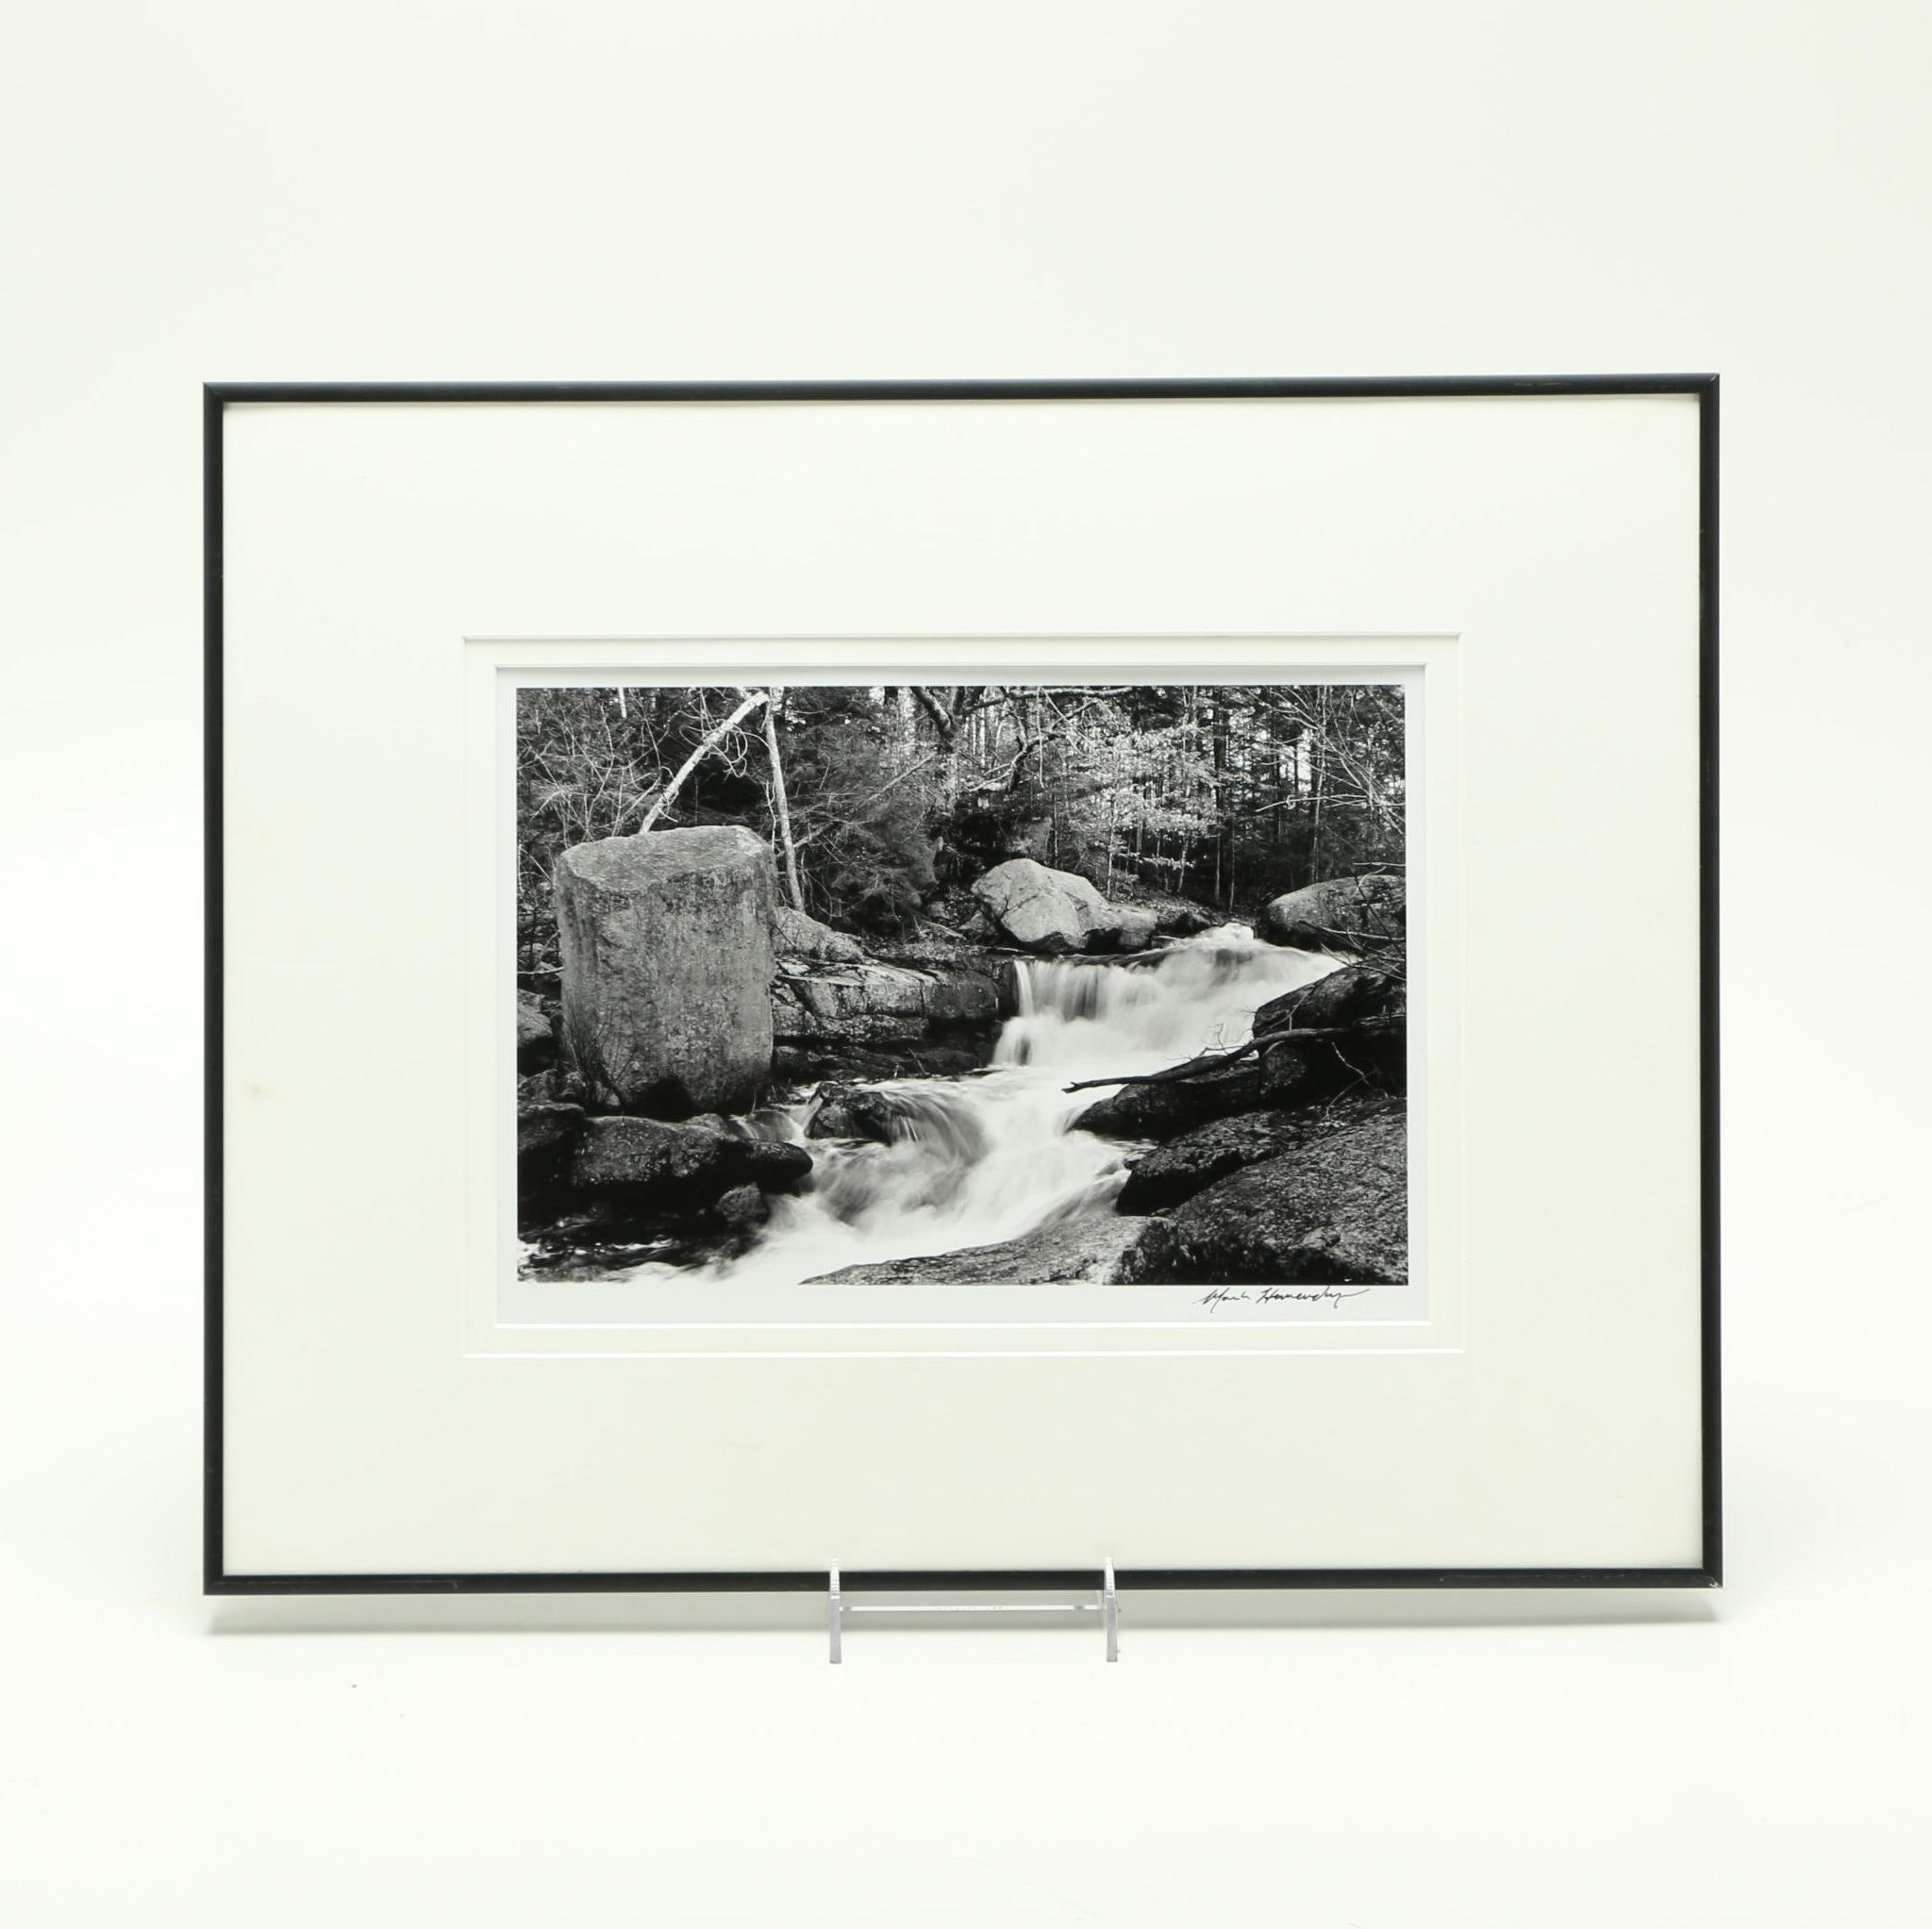 Signed Framed Photograph of a Stream